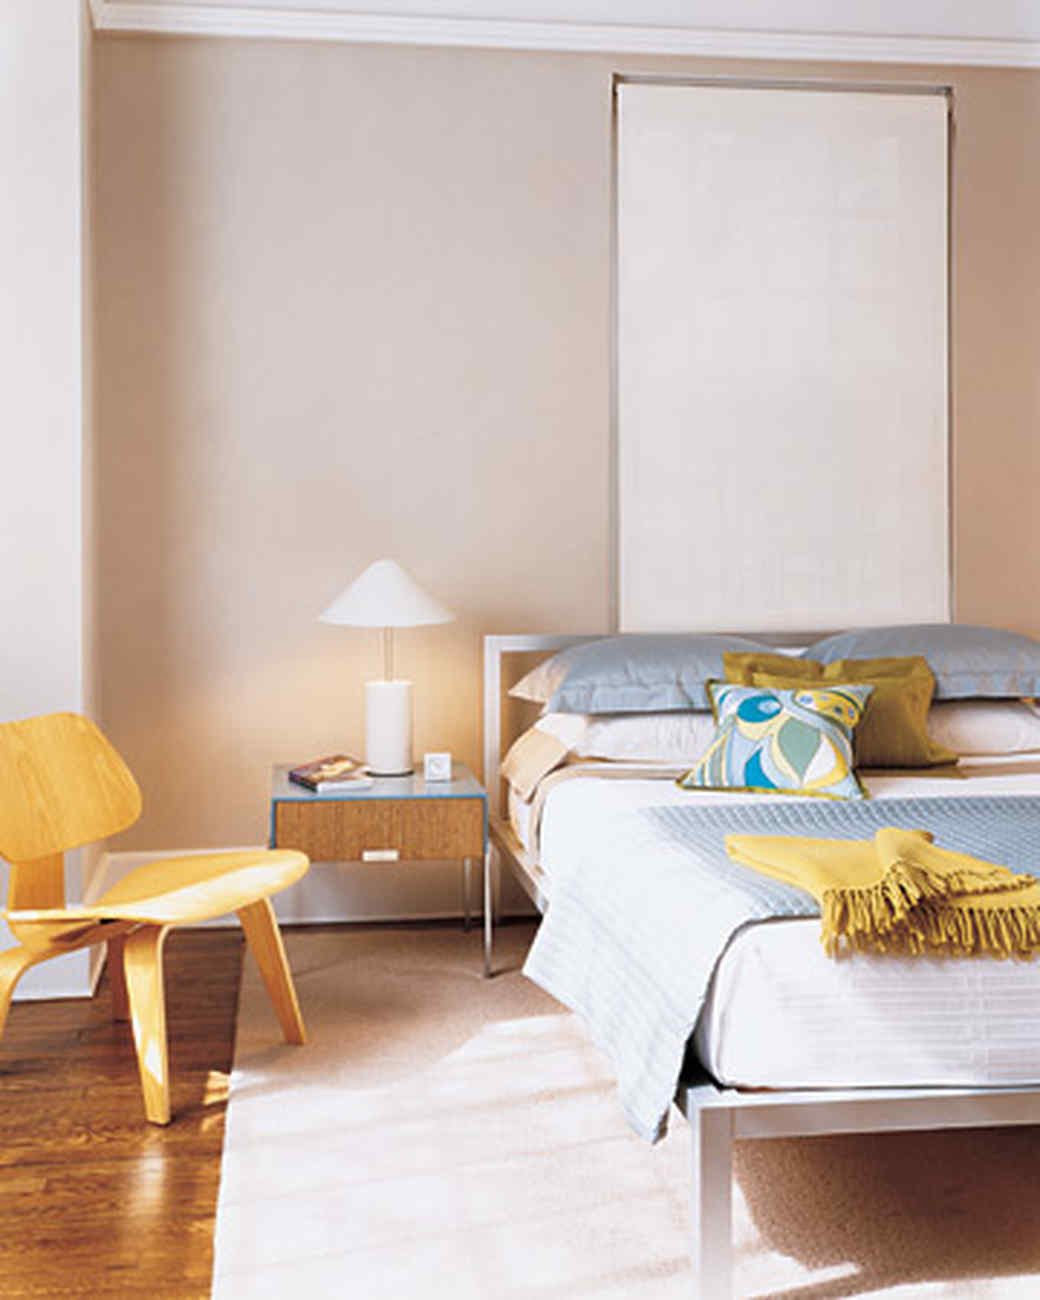 Best ideas about Bedroom Design Ideas . Save or Pin Bedroom Decorating Ideas Now.